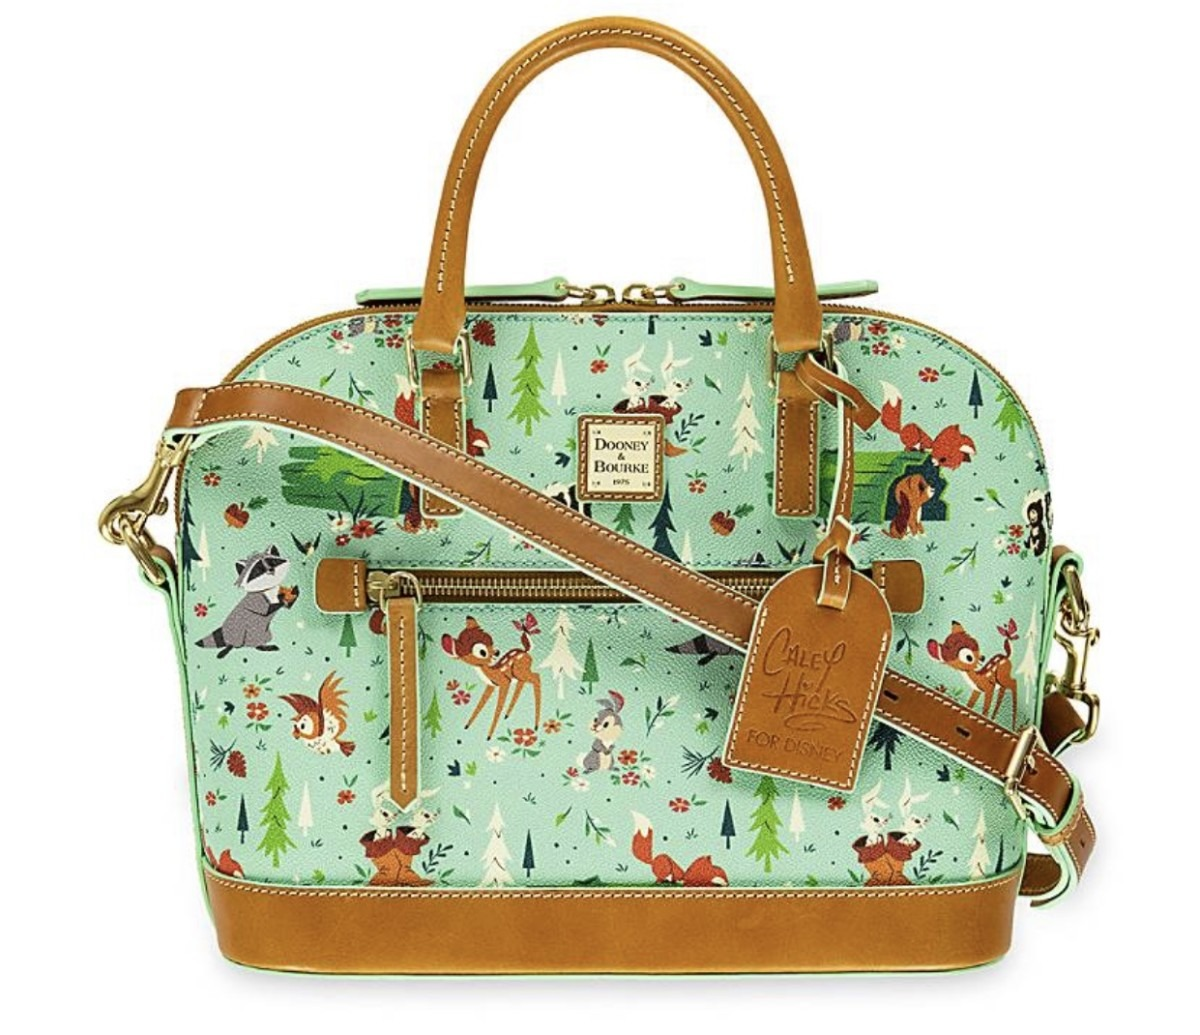 New Bambi and Friends Dooney & Bourke Now on ShopDisney 3